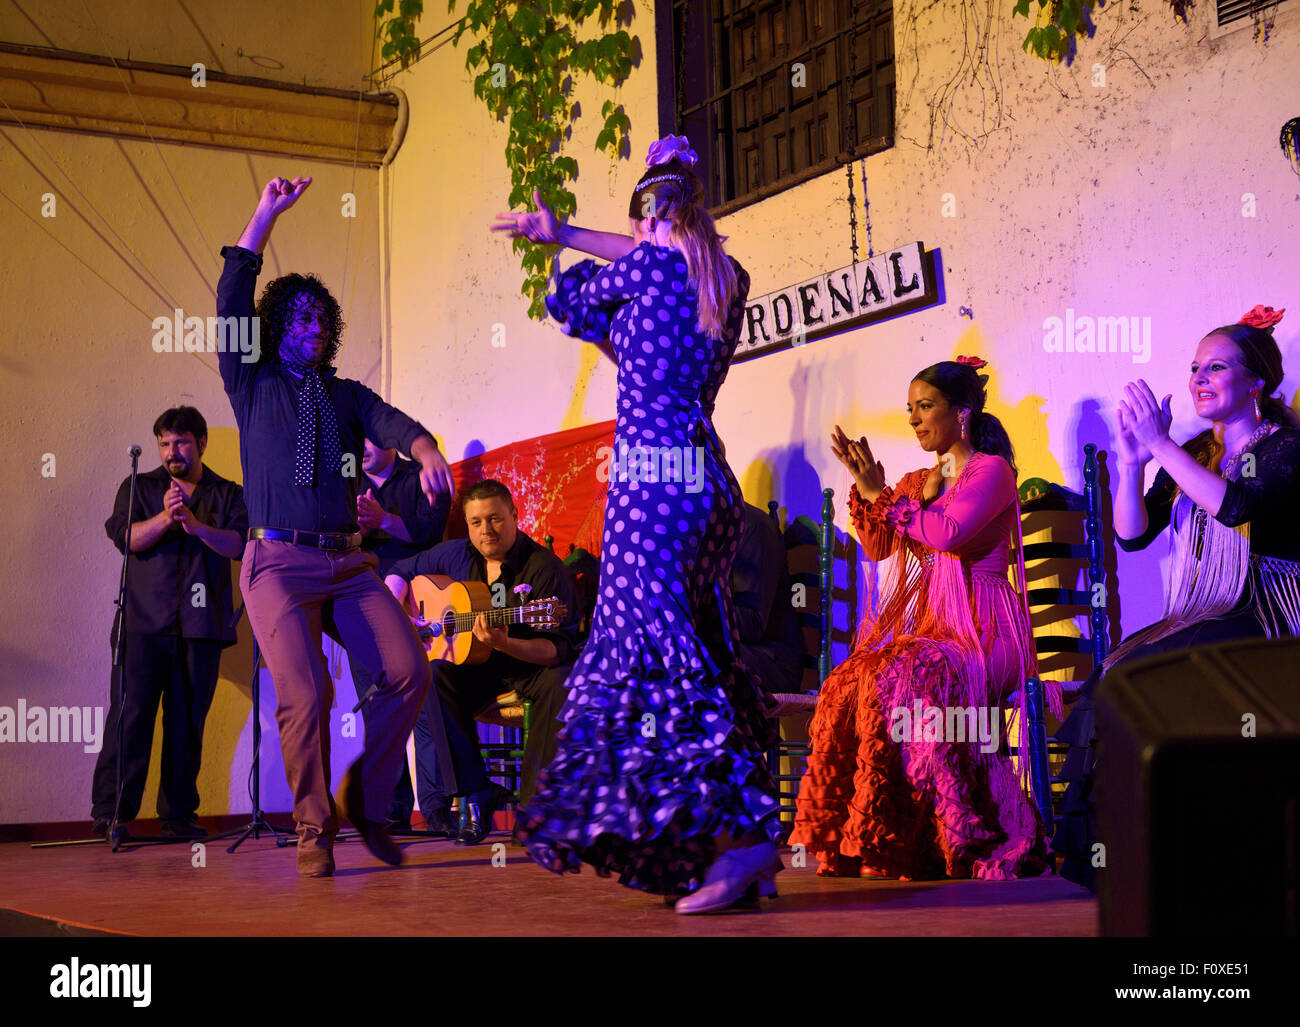 Couple of Flamenco dancers with women clapping on stage at night in an outdoor courtyard in Cordoba Spain - Stock Image